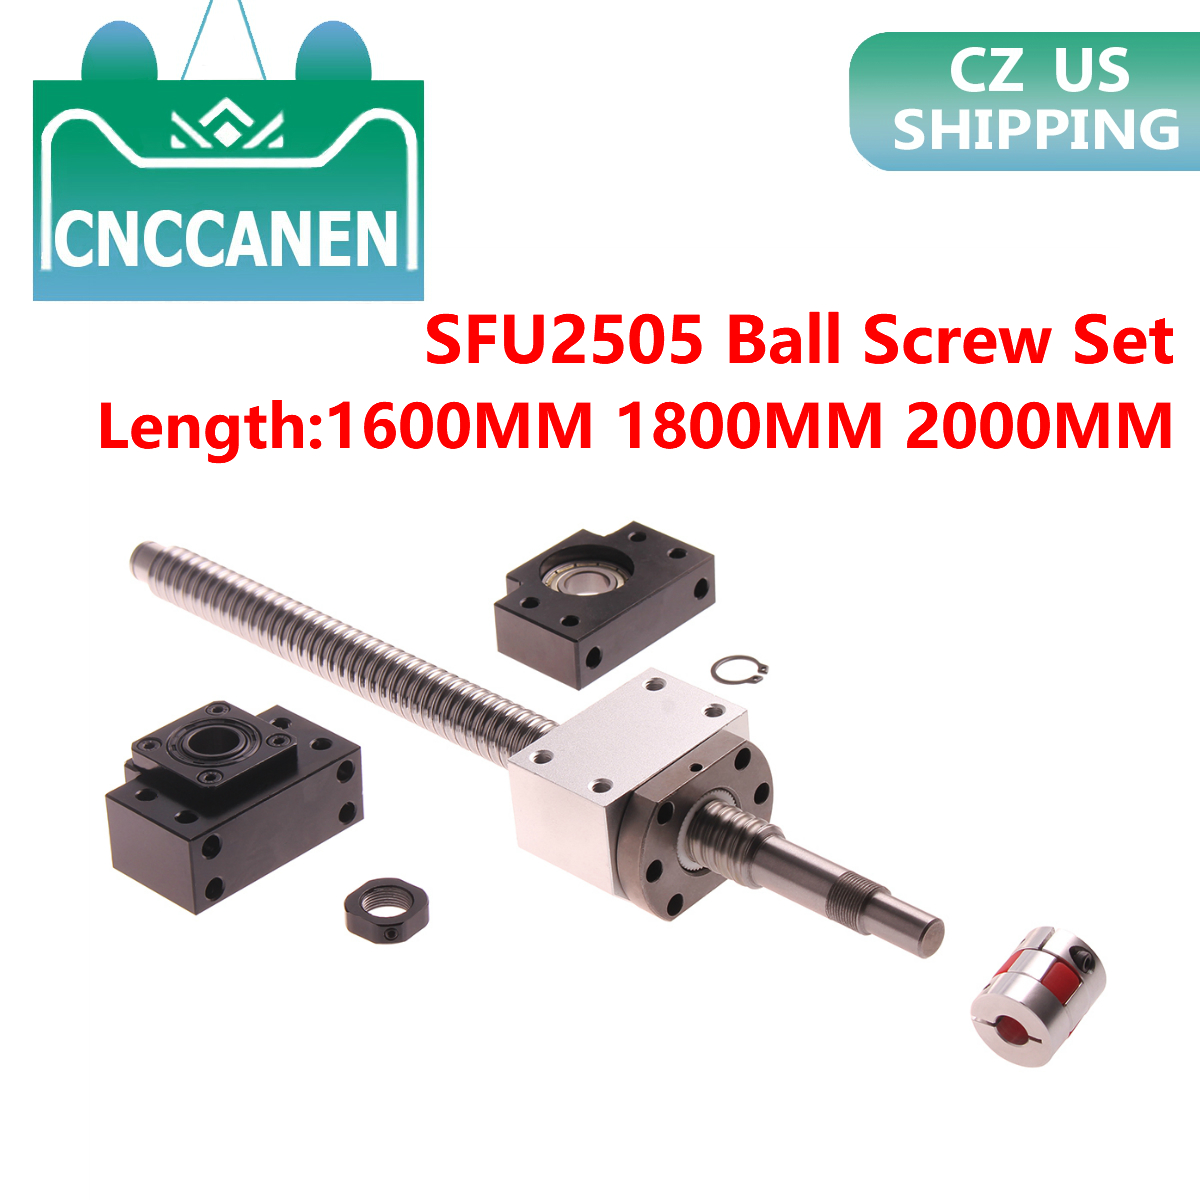 Ball Screw SFU1610 Length 200mm~1500mm Ballscrew End Machined With Ballnut